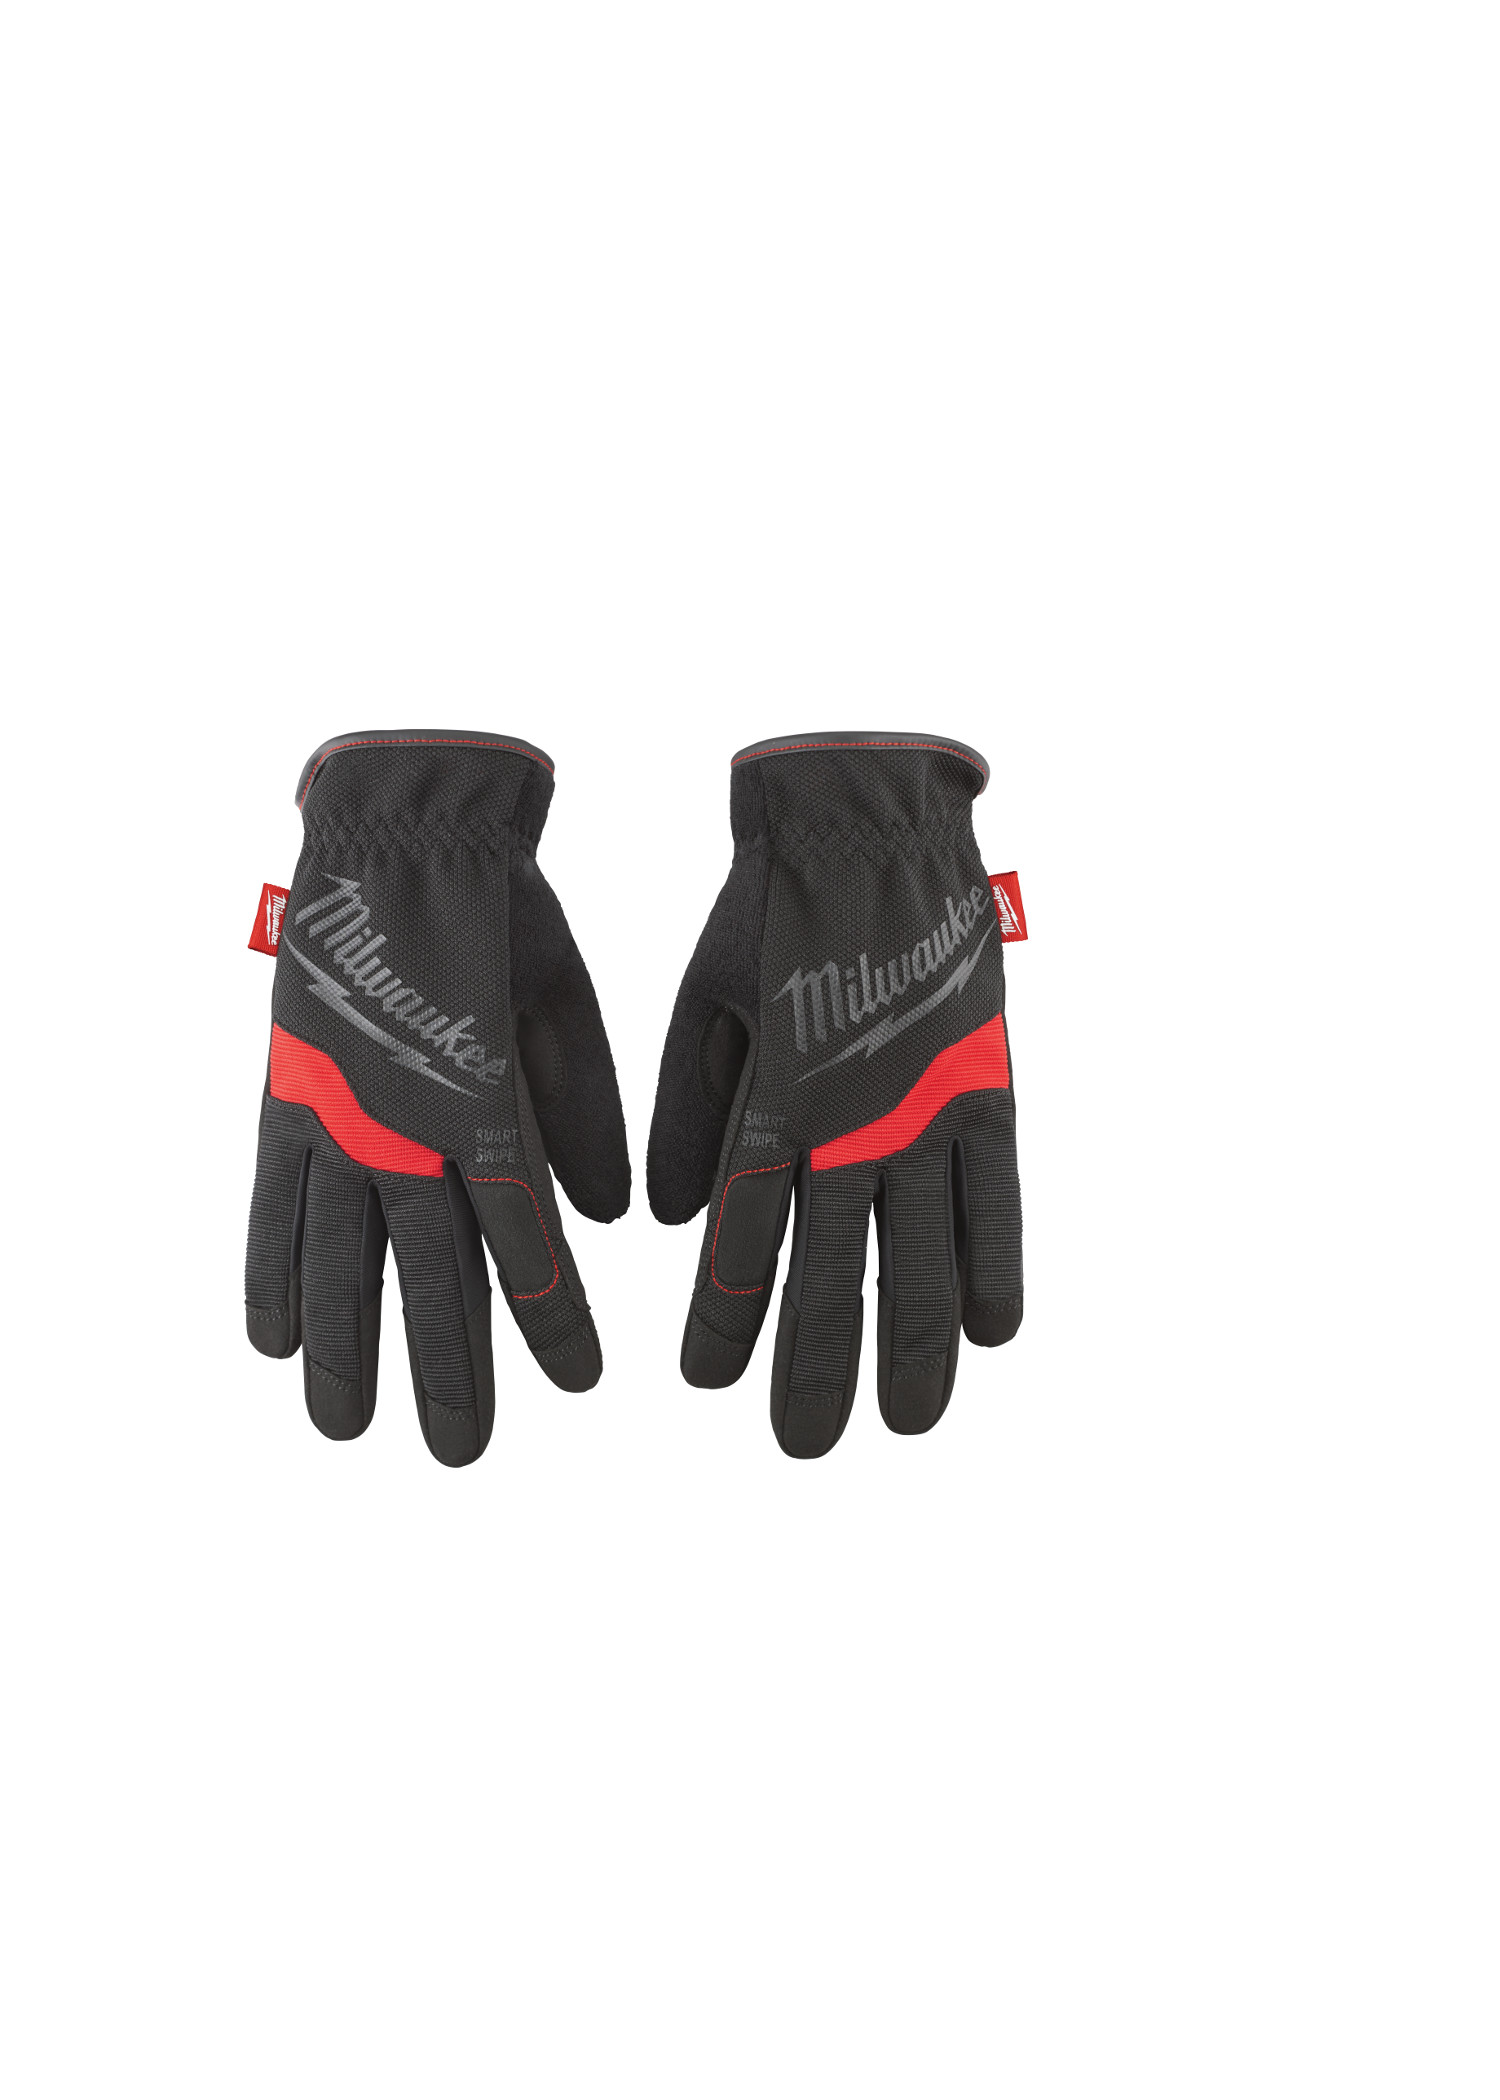 Milwaukee® 48-22-8713 General Purpose Slip-On Work Gloves, Slip-On, High Dexterity Finger Tip Style, XL, Synthetic Leather, Black/Red, Free Flex Elastic Cuff, Breathable Lining